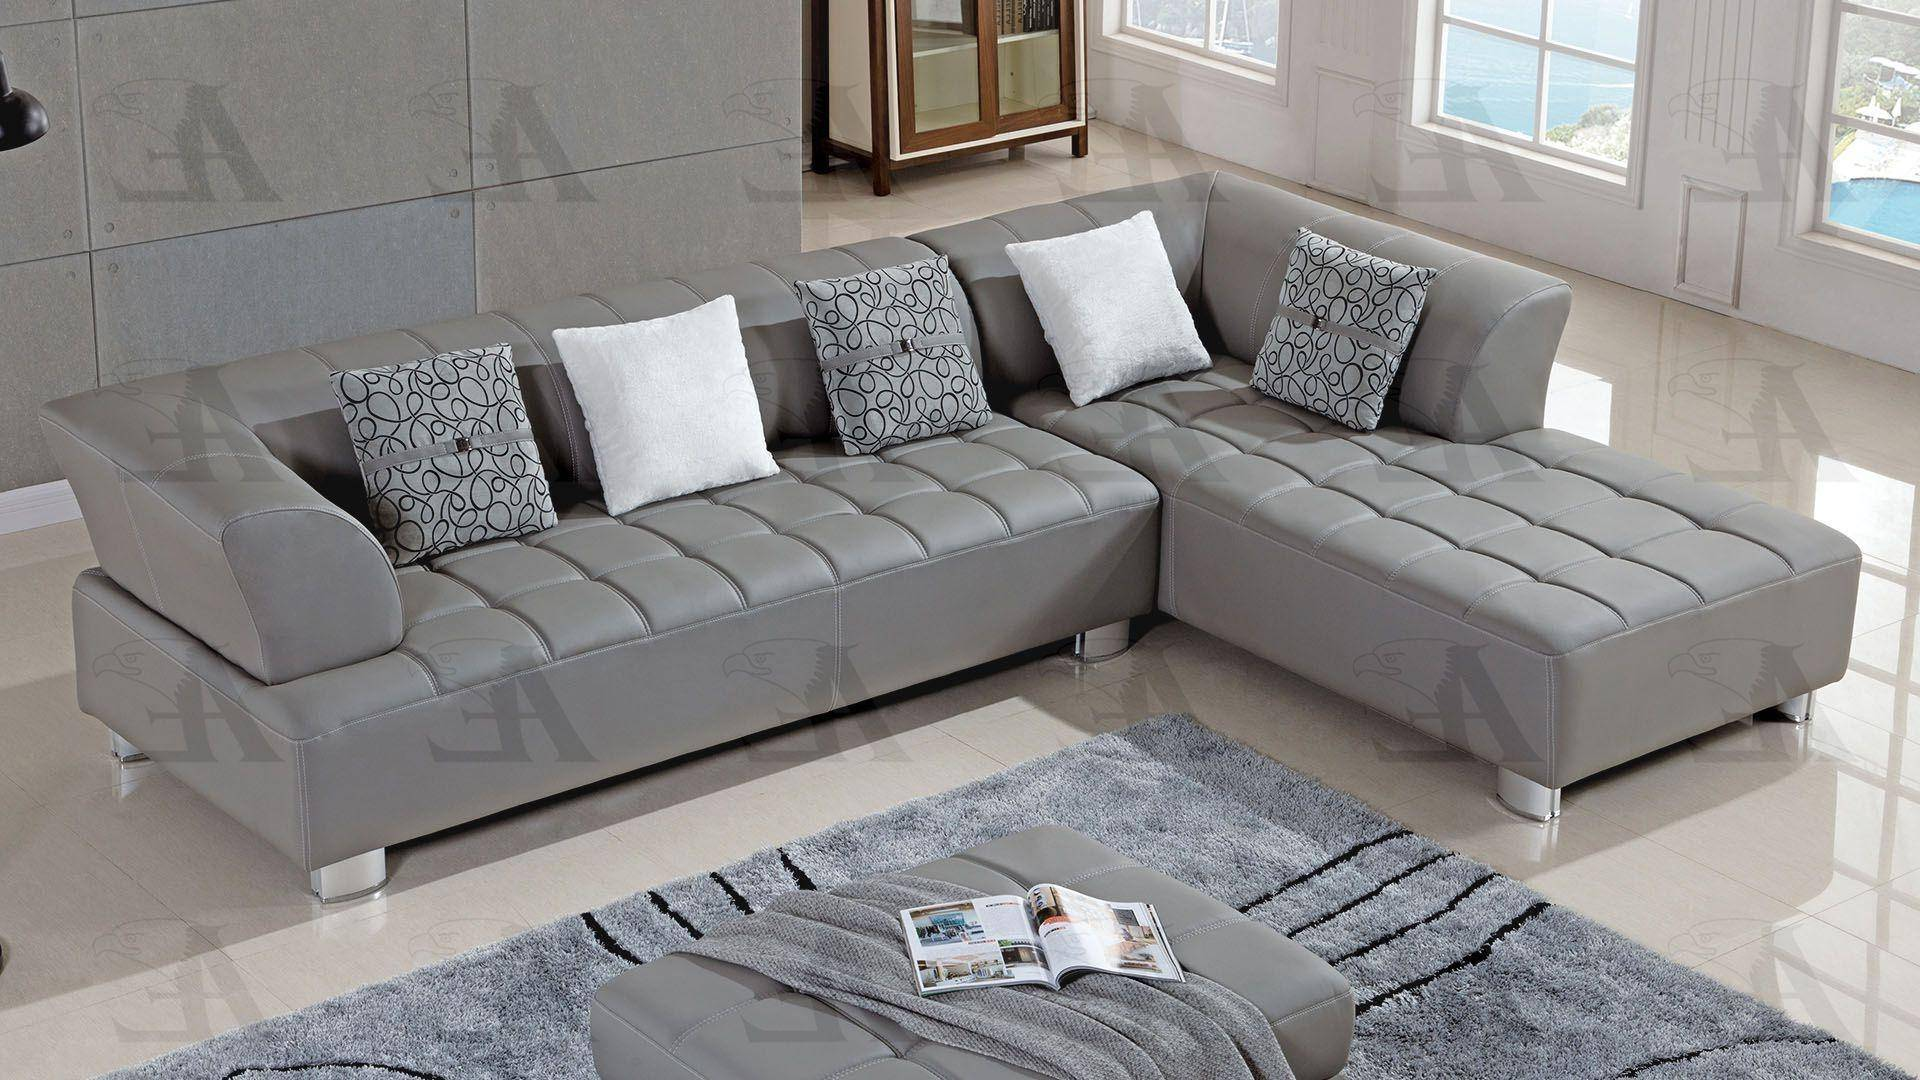 american eagle ae l138 gr sectional sofa set 3 pcs right hand chase in gray faux leather